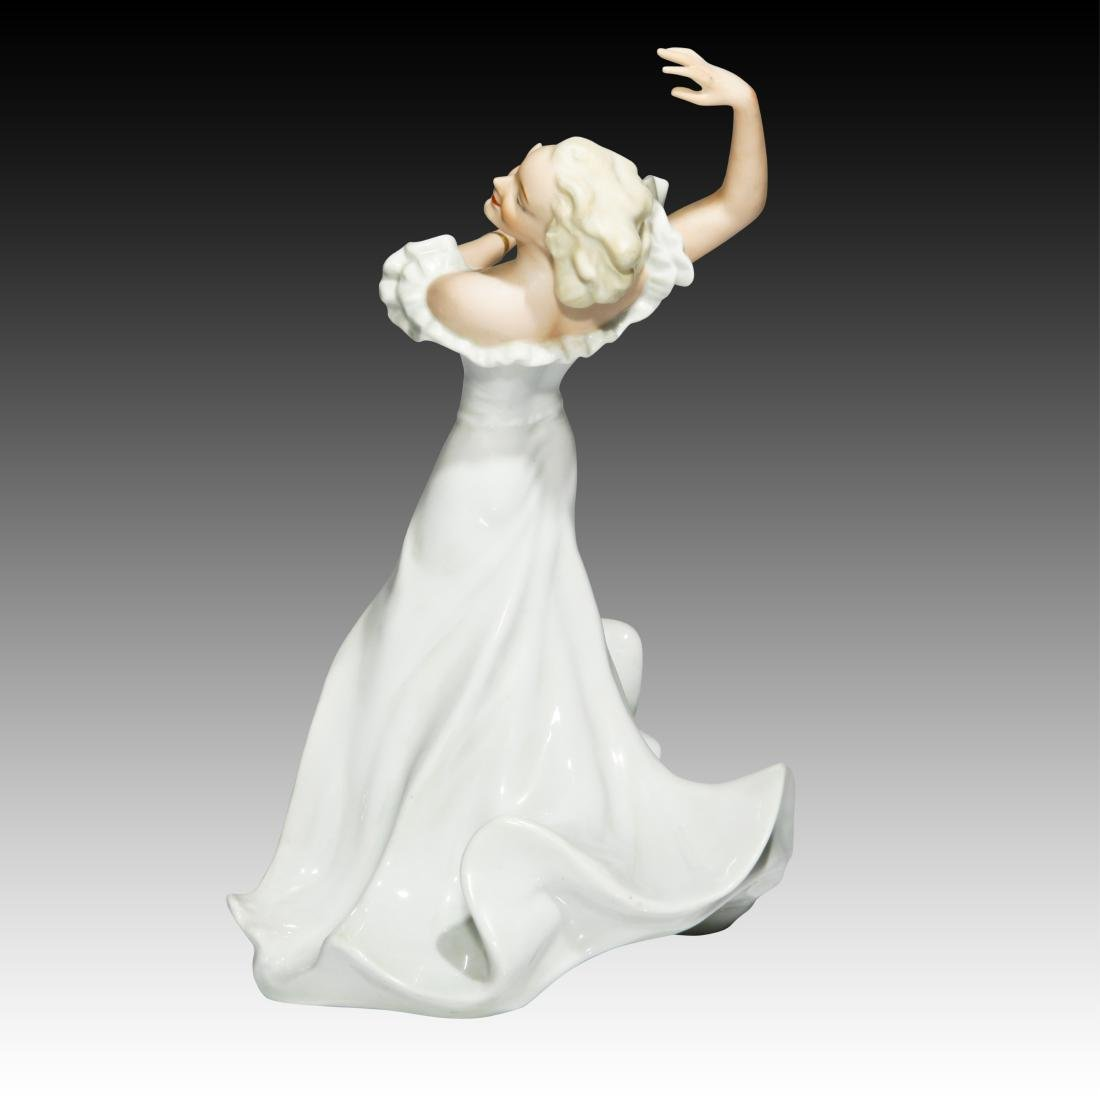 Wallendorf Female Art Deco Dancing Figurine - 2